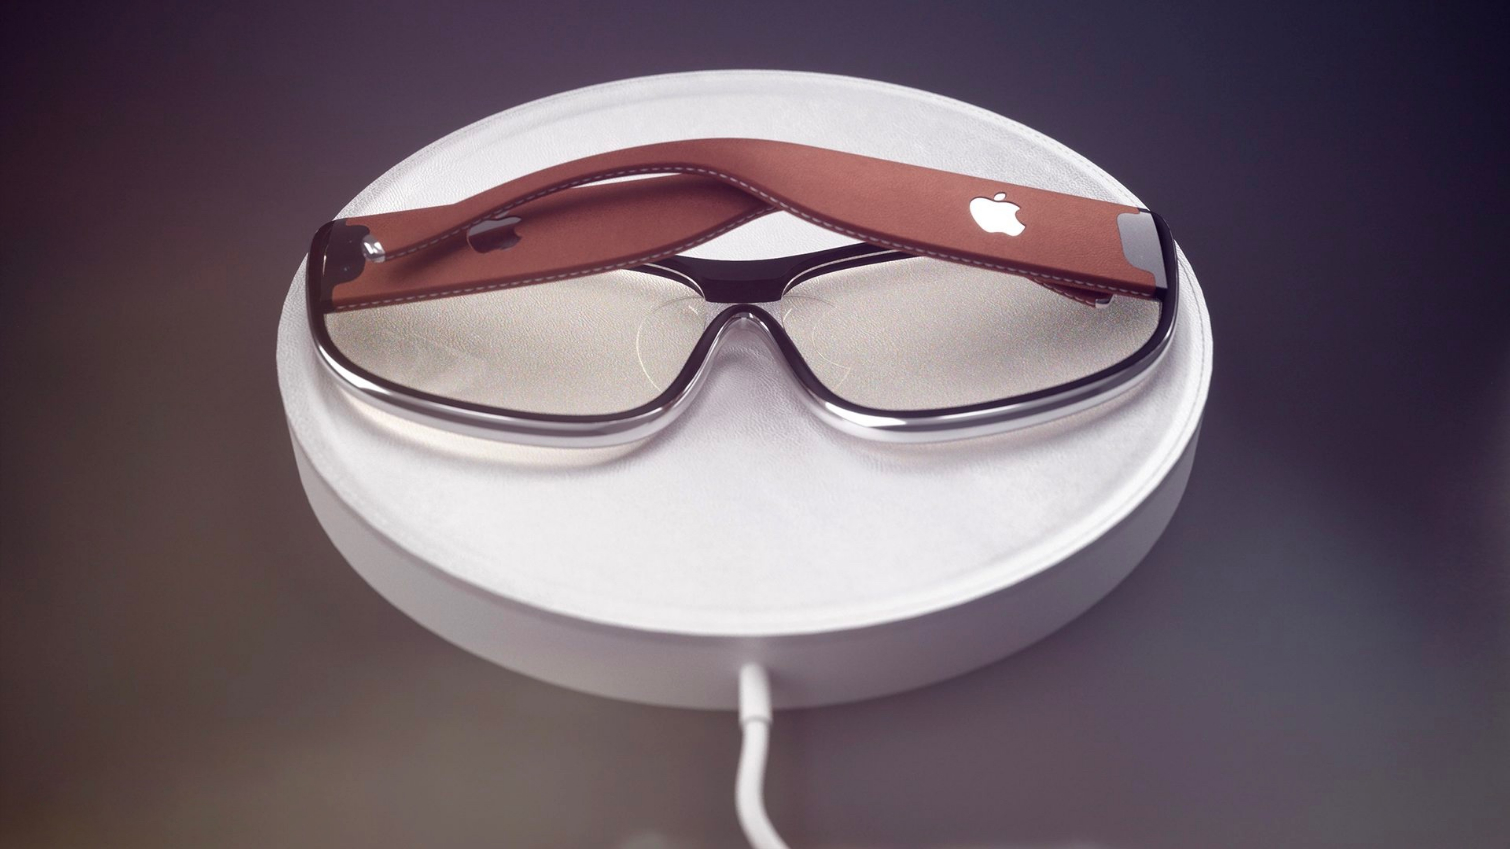 Sforum - Bloomberg-latest cell-3 Bloomberg: Apple will focus on augmented reality by 2020 with new AR glasses and iPhones